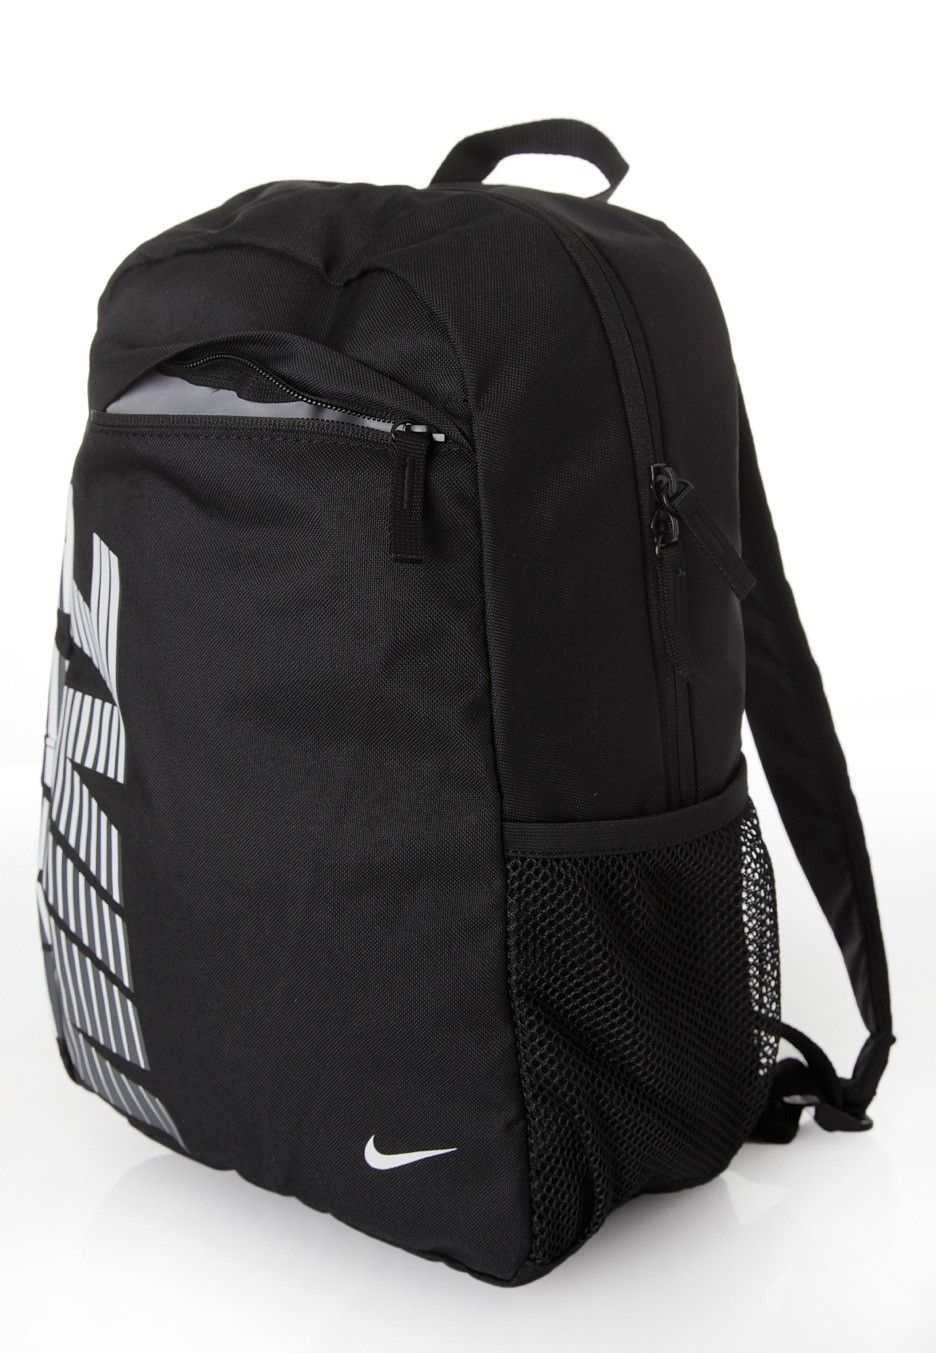 Nike - Classic Sand Black - Backpack - Official Merchandise Online Shop -  Impericon.com Worldwide 40 597cea19903e6